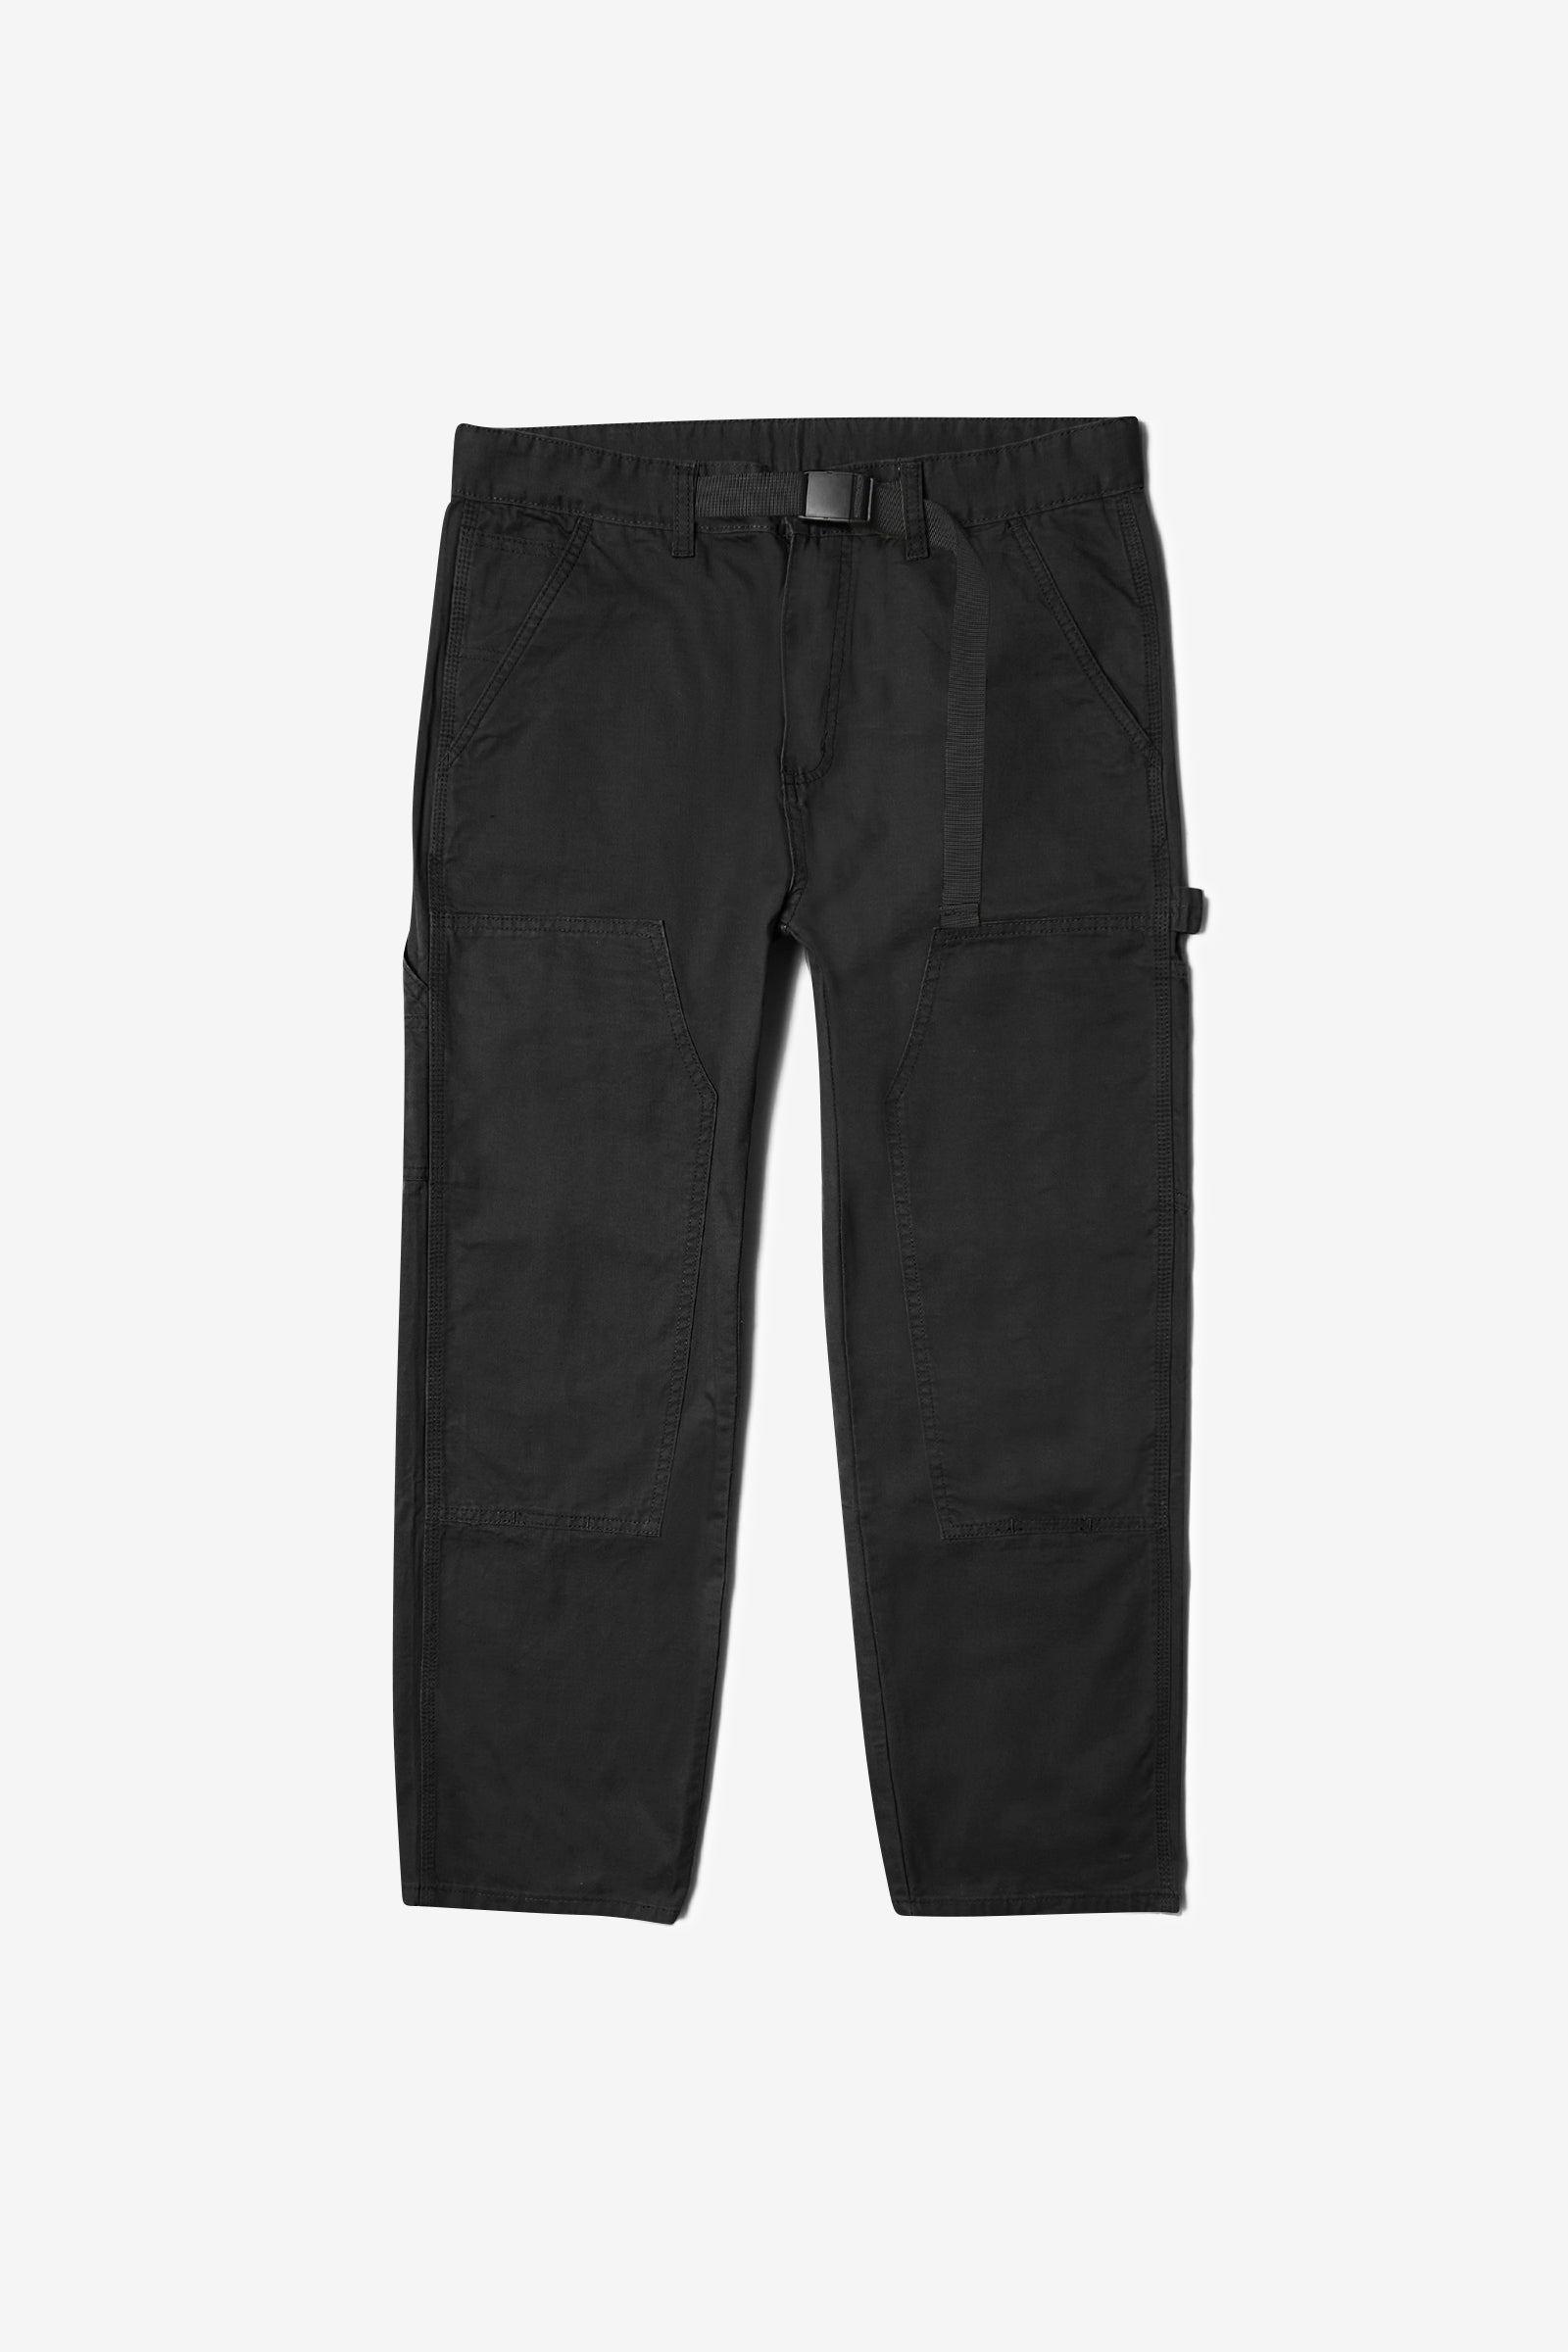 Blacksmith - Double Knee Carpenter Pants - Black